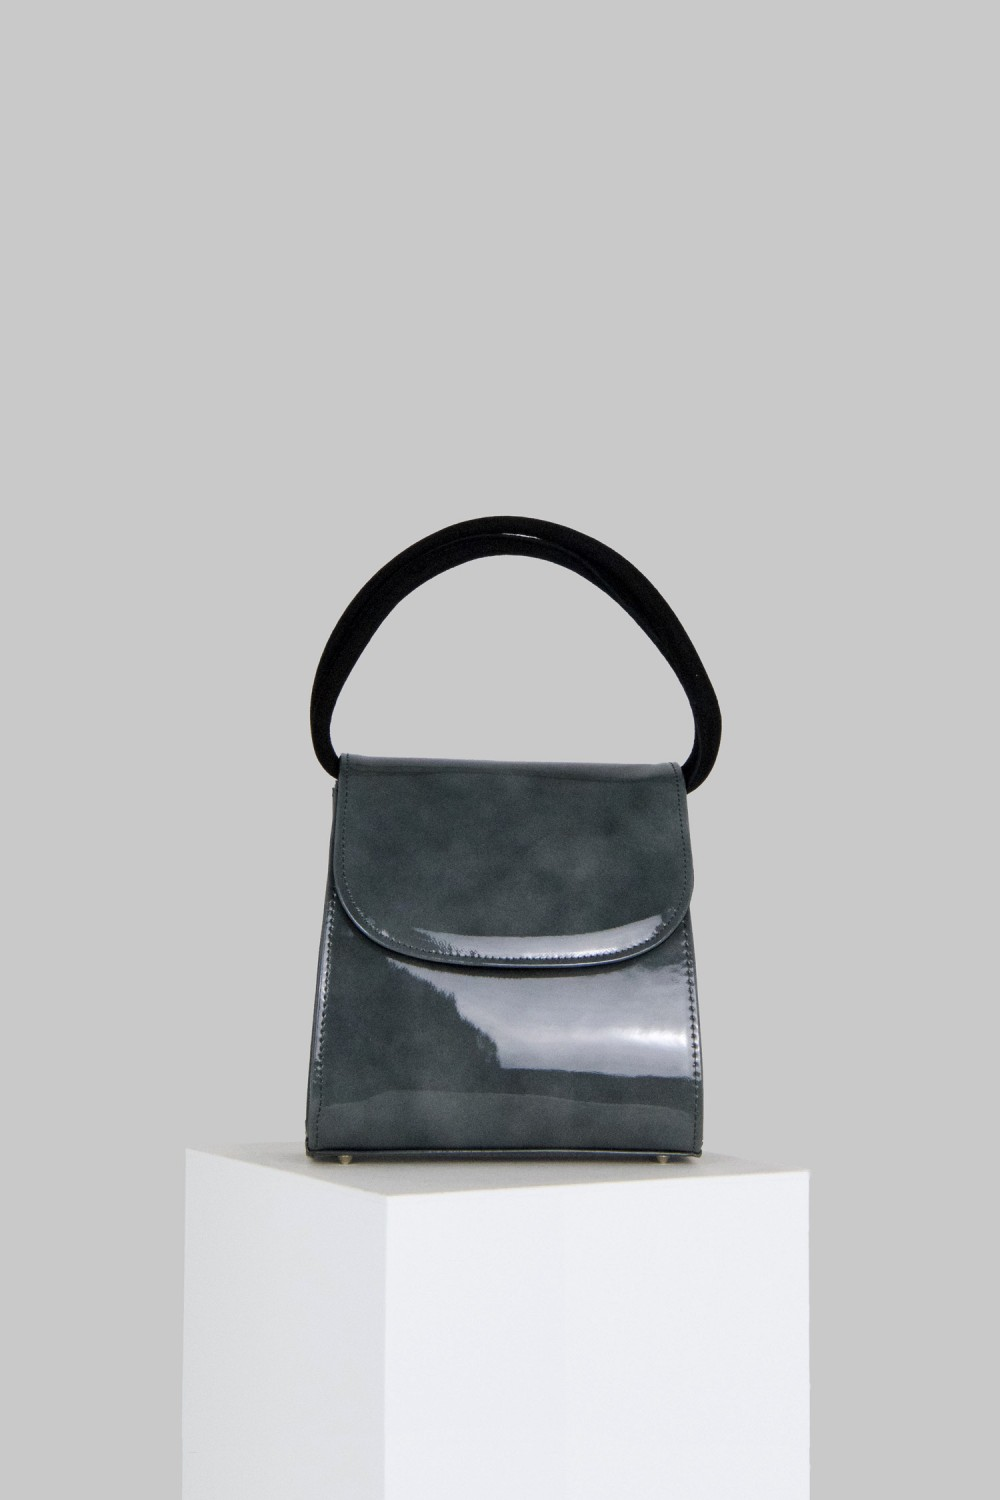 Loop Bag in Grey Patent Leather